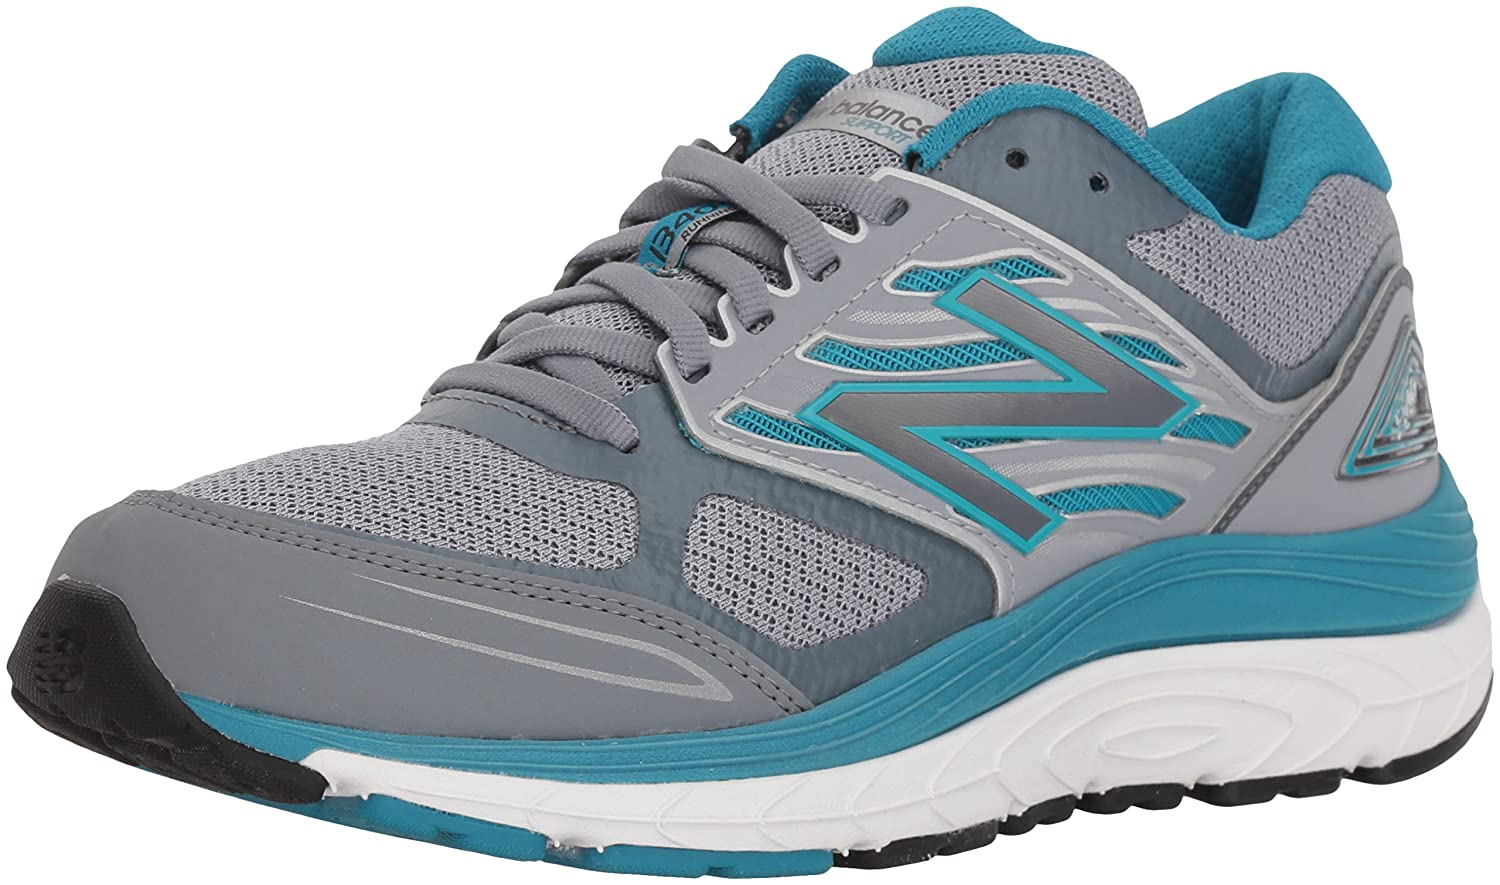 New Balance Women's 1340v3 Running Shoe B01N97BV9C 12 D US|Dark Grey